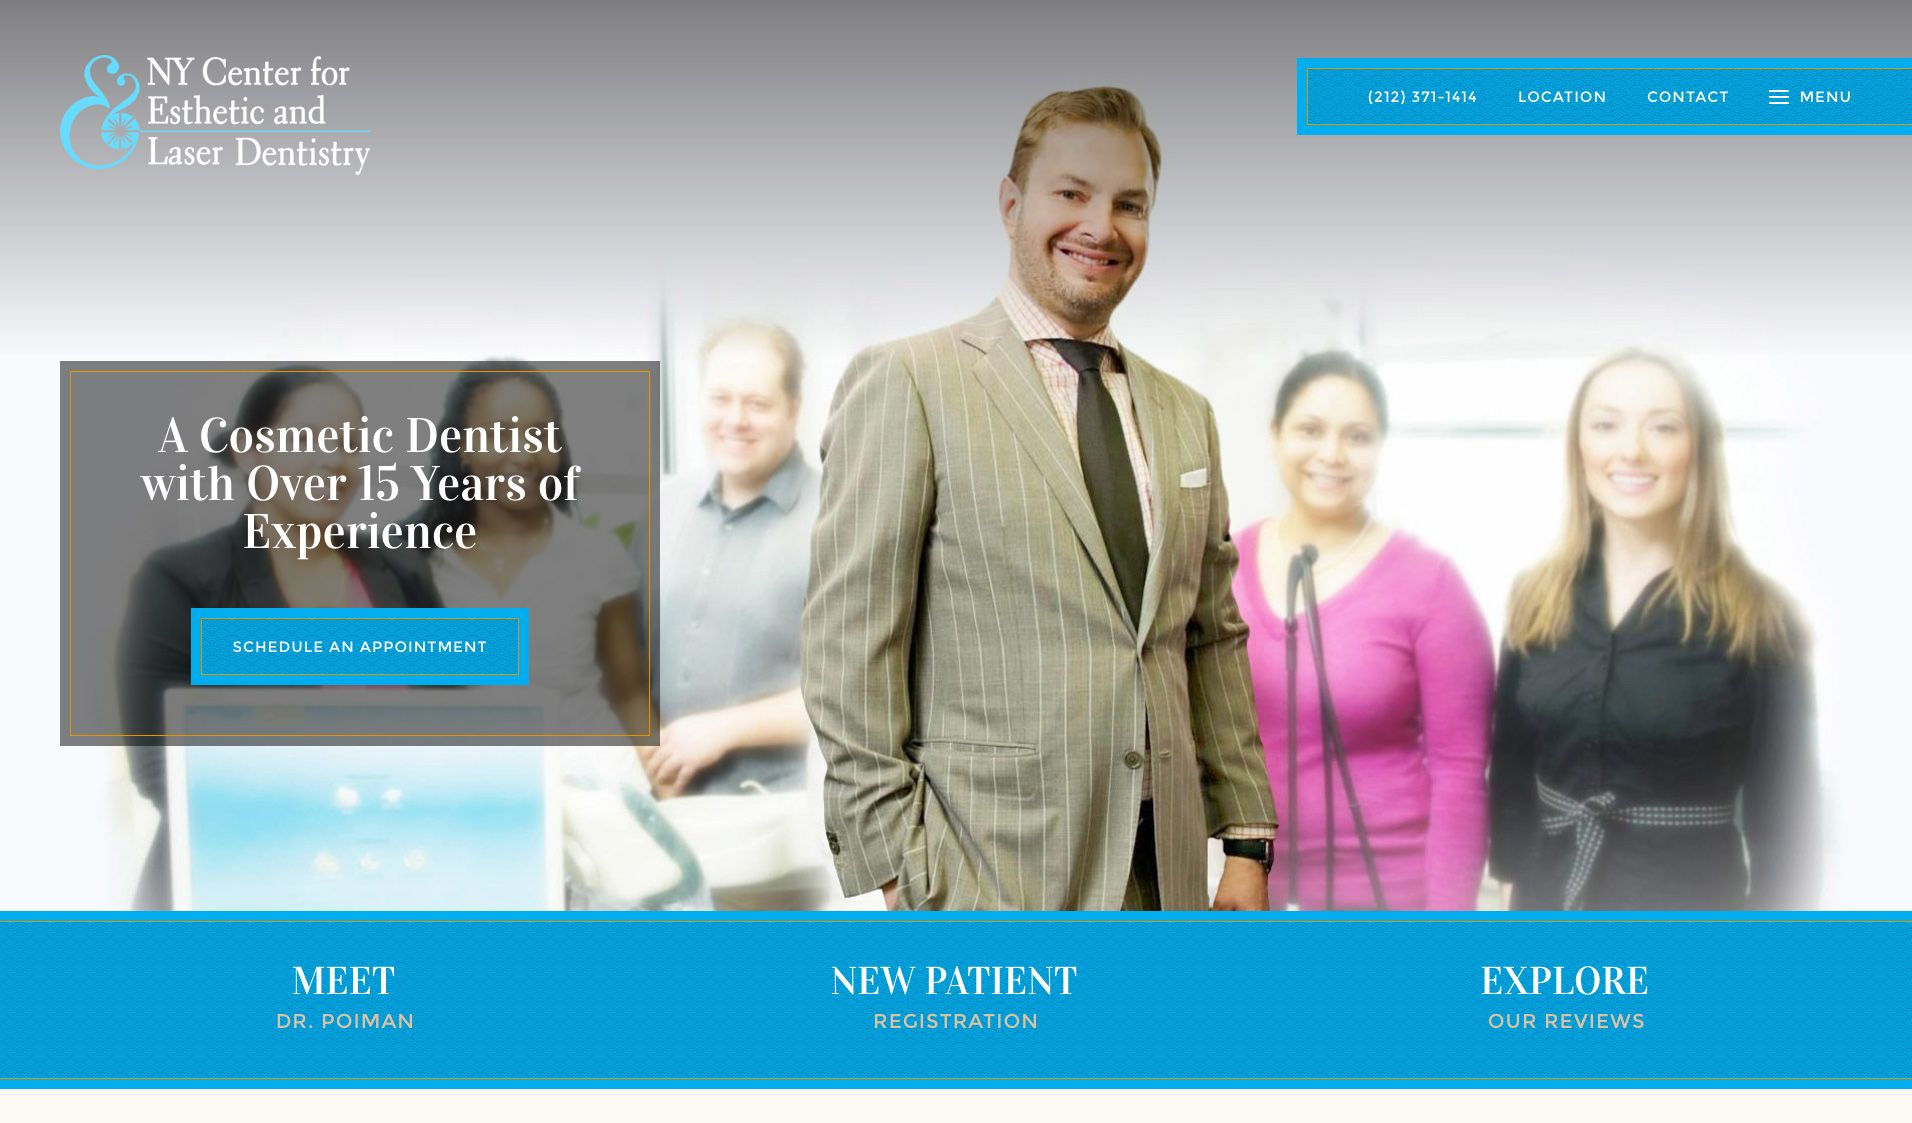 The website of NY Center for Esthetic and Laser Dentistry